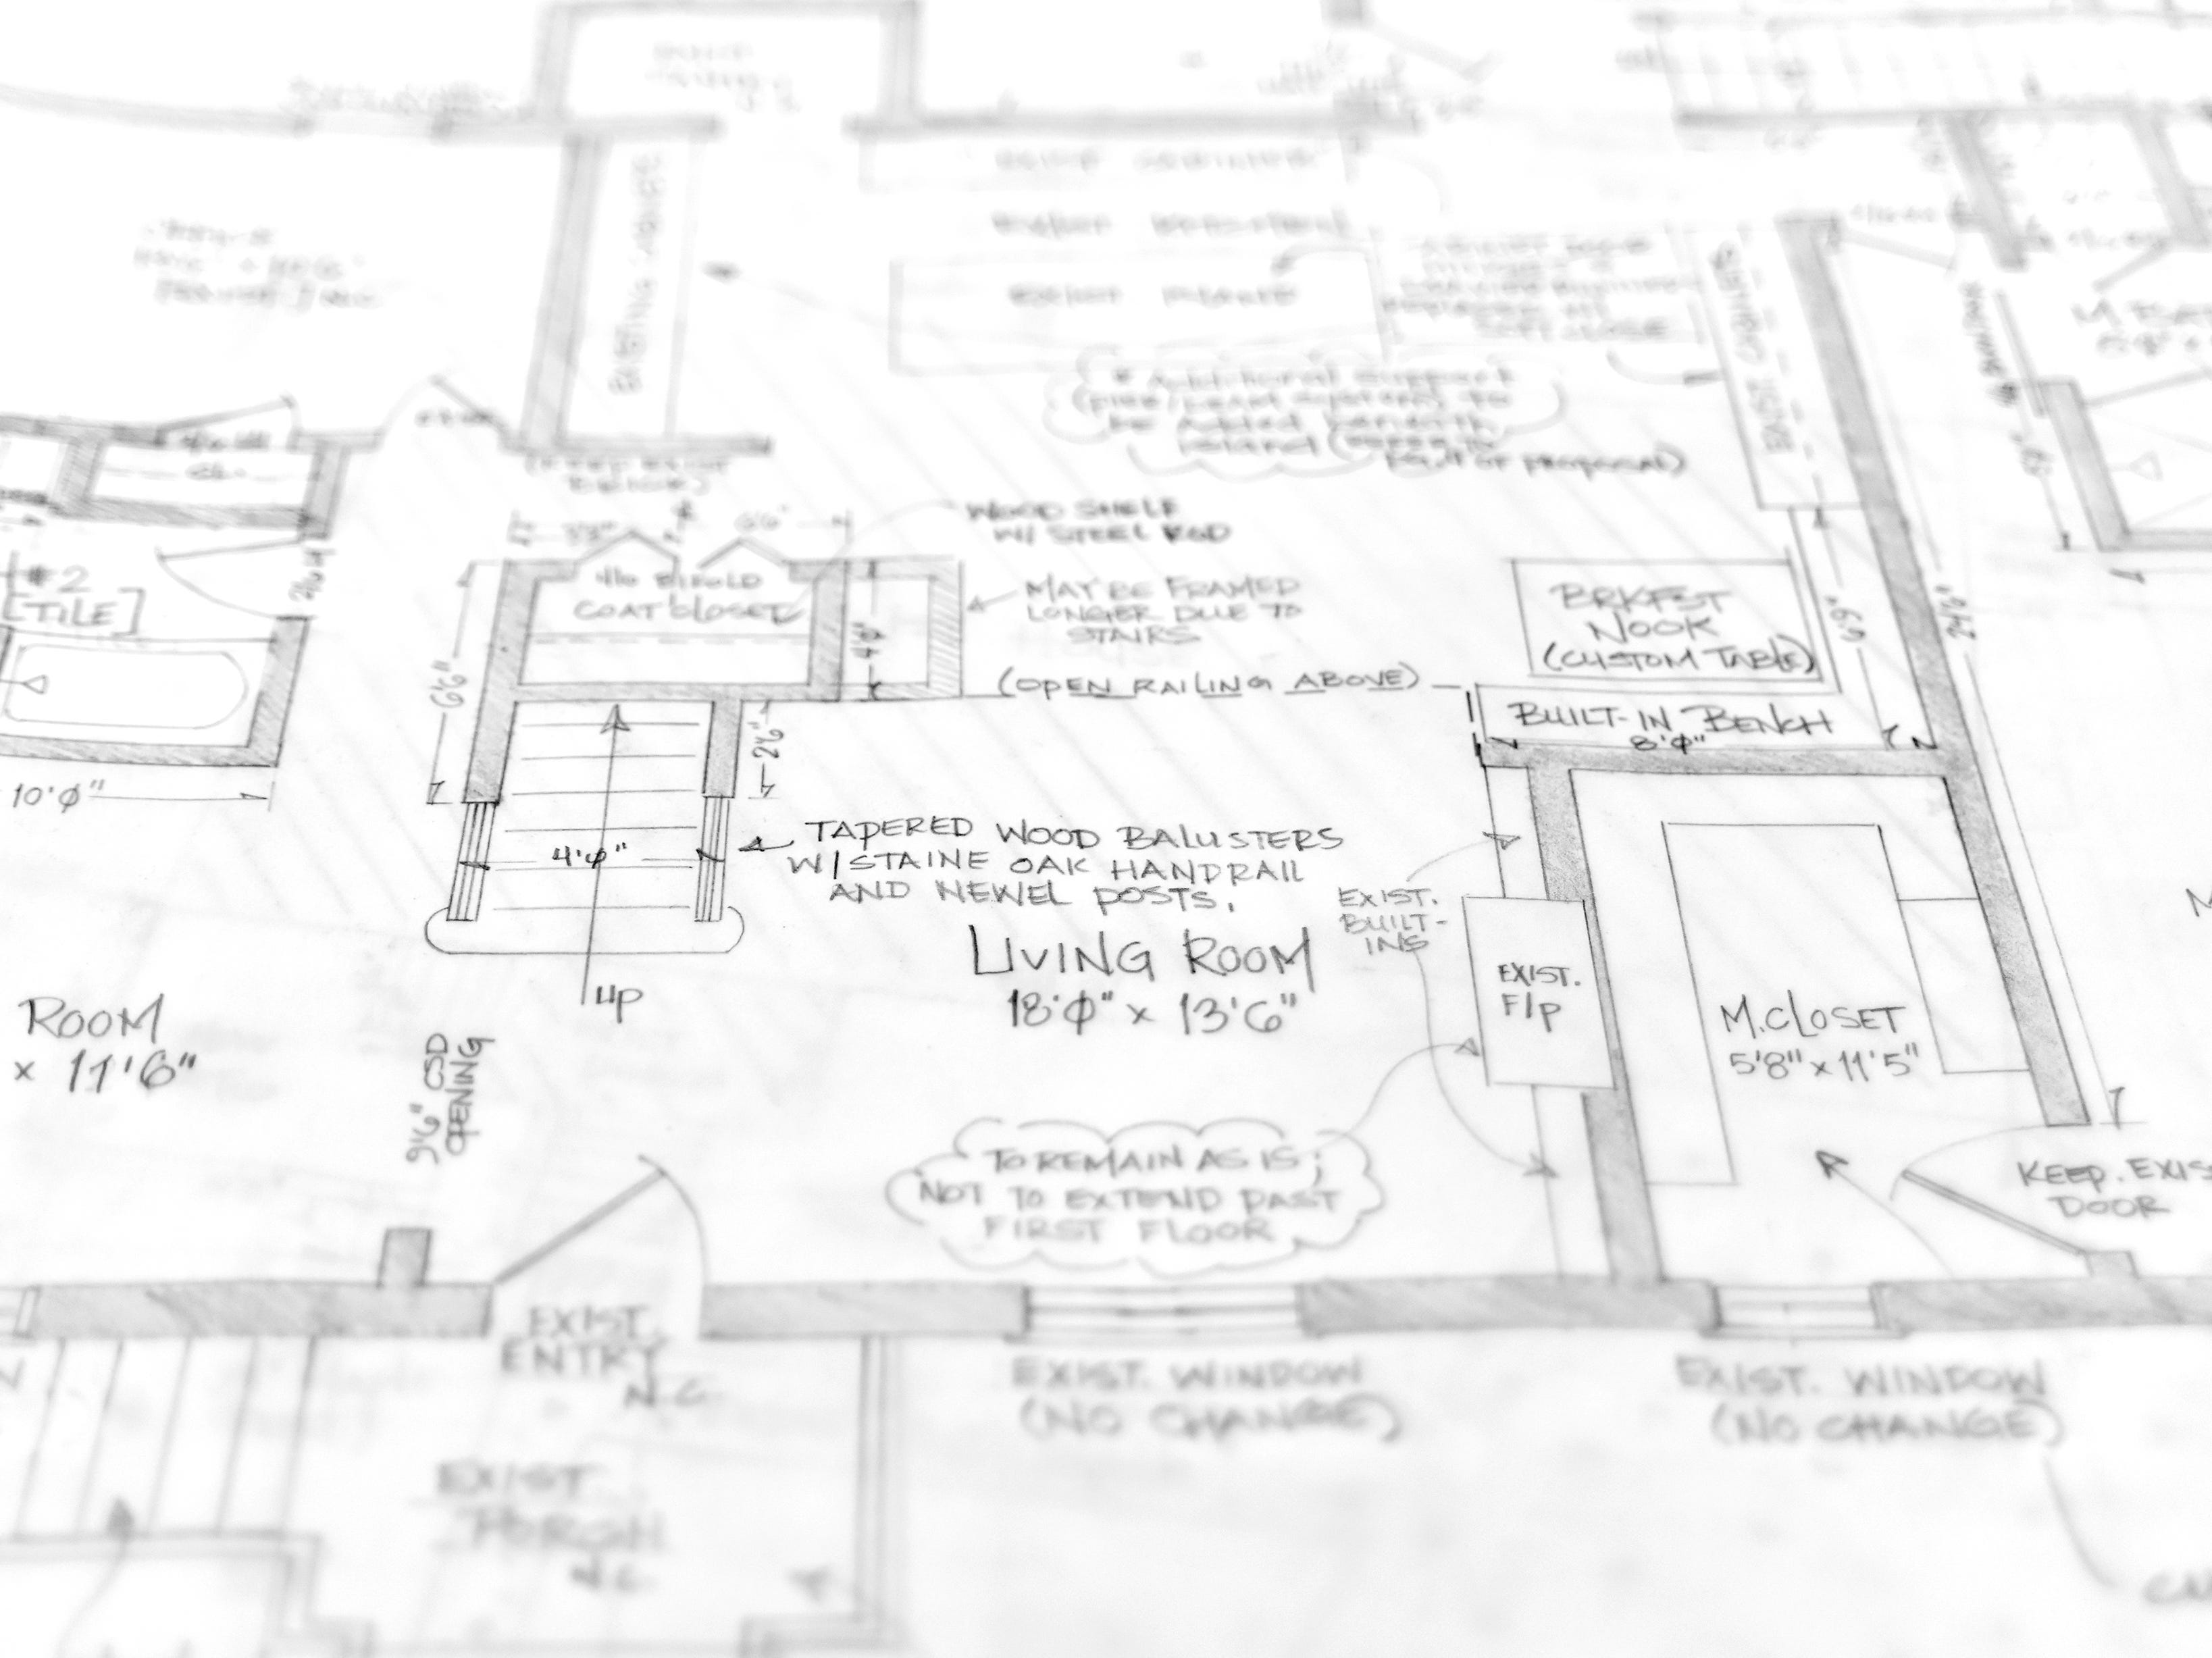 Floor plans designed by Lenzi Waits at Design for Downtown.